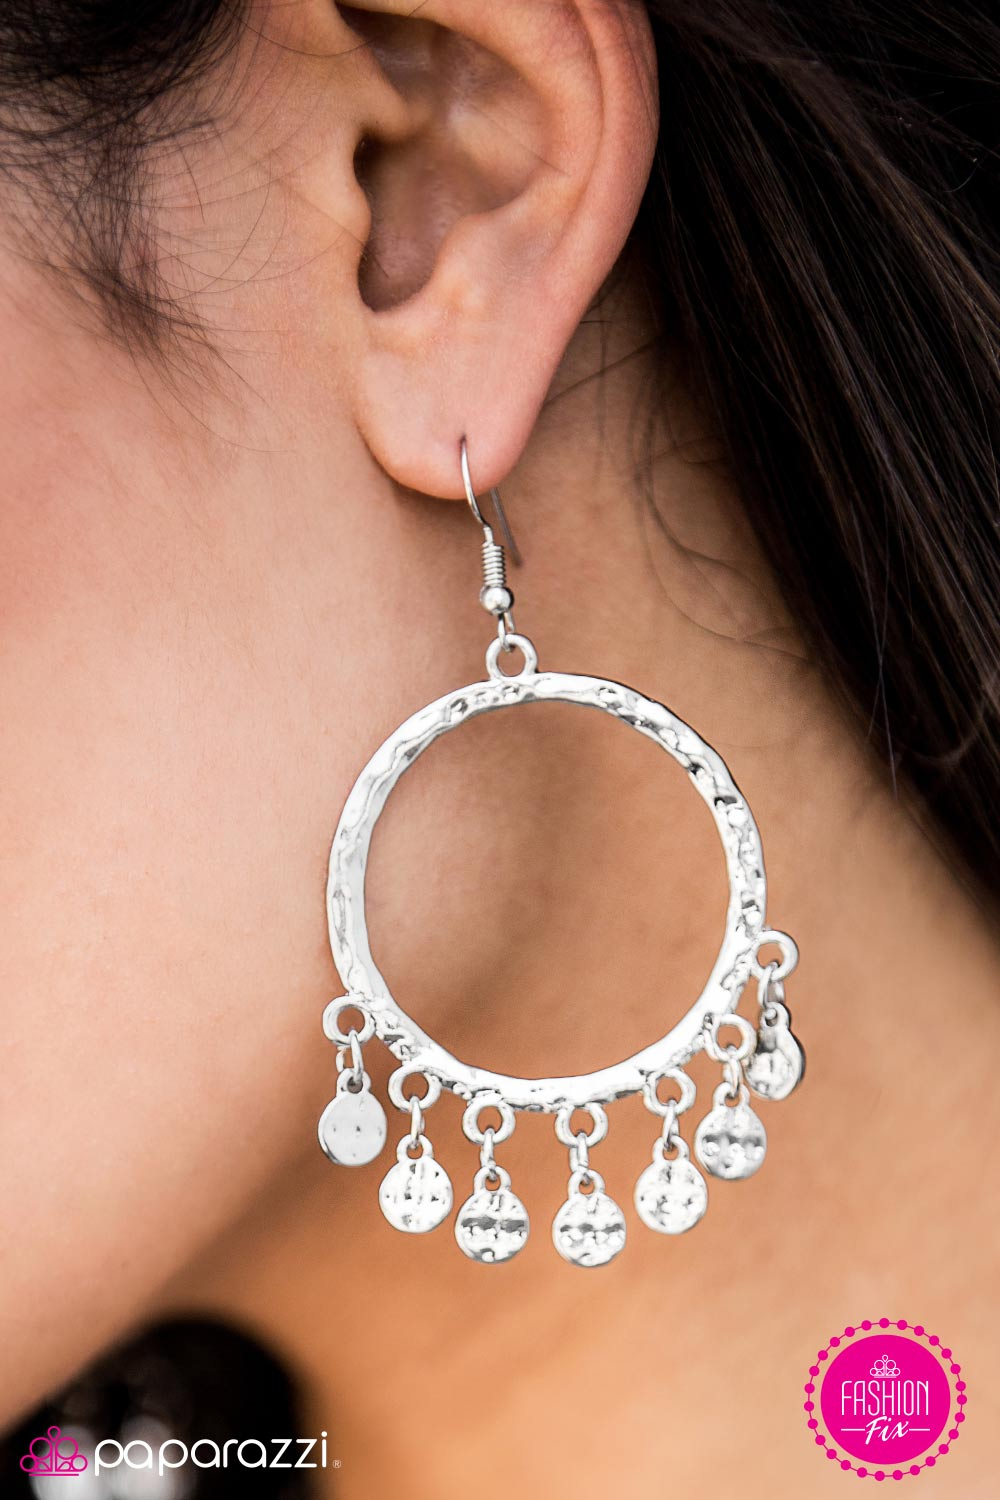 Rise and Chime - Paparazzi earrings